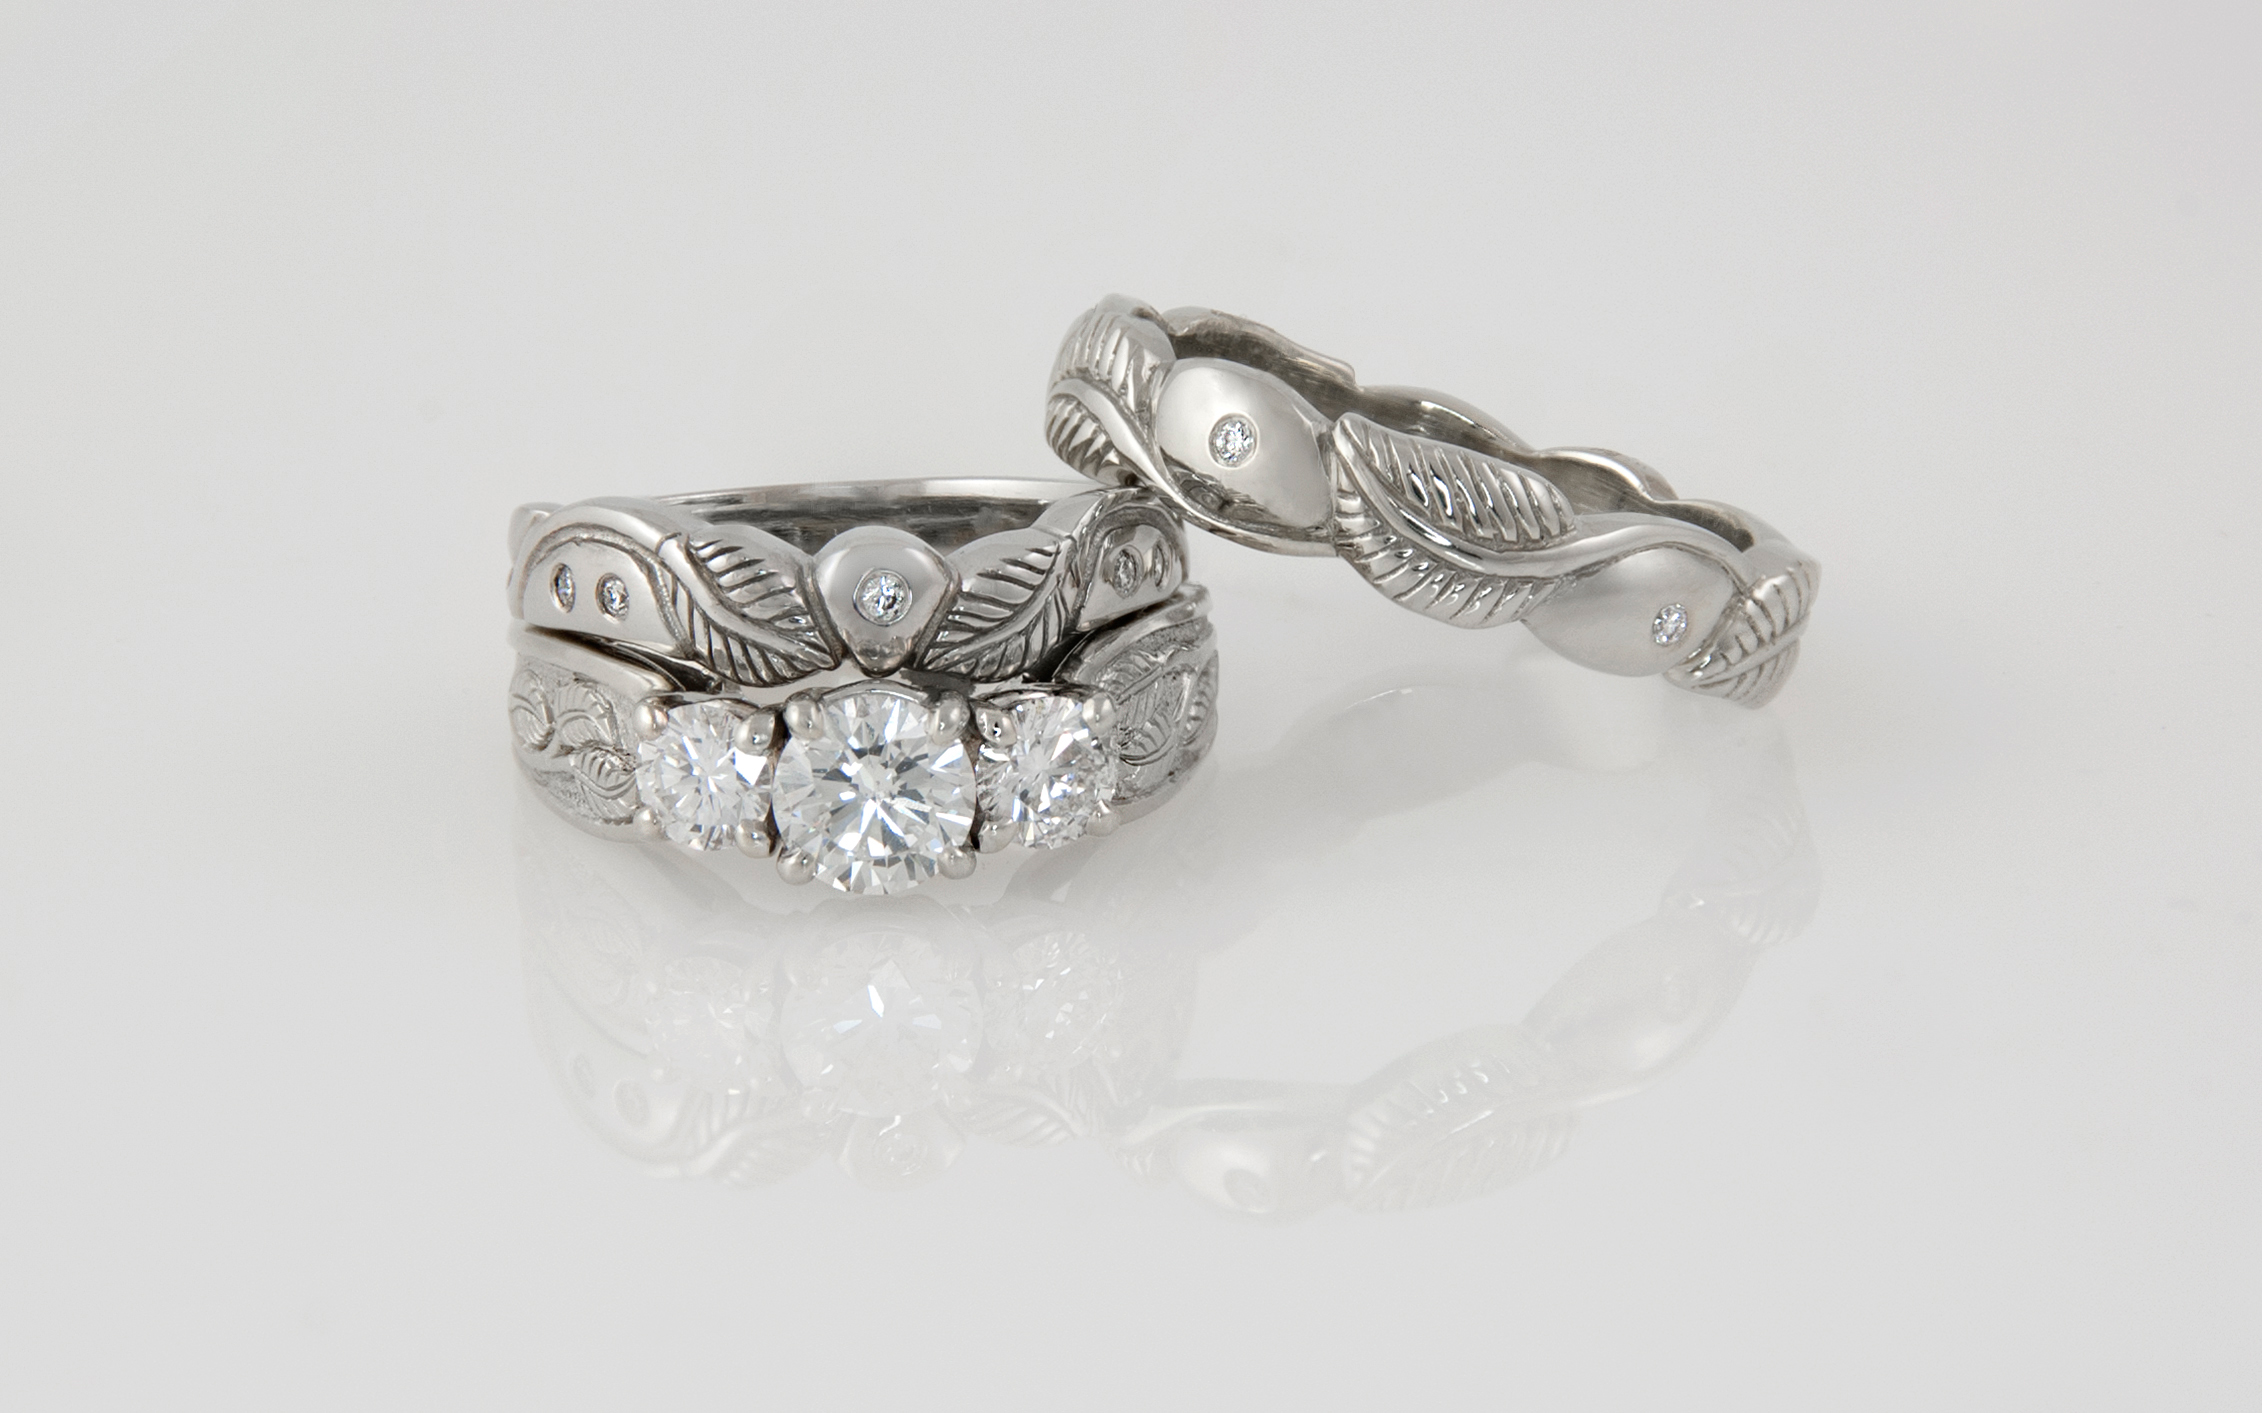 3 Stone Apple Leaf Design Engagement Ring With Matching Bands